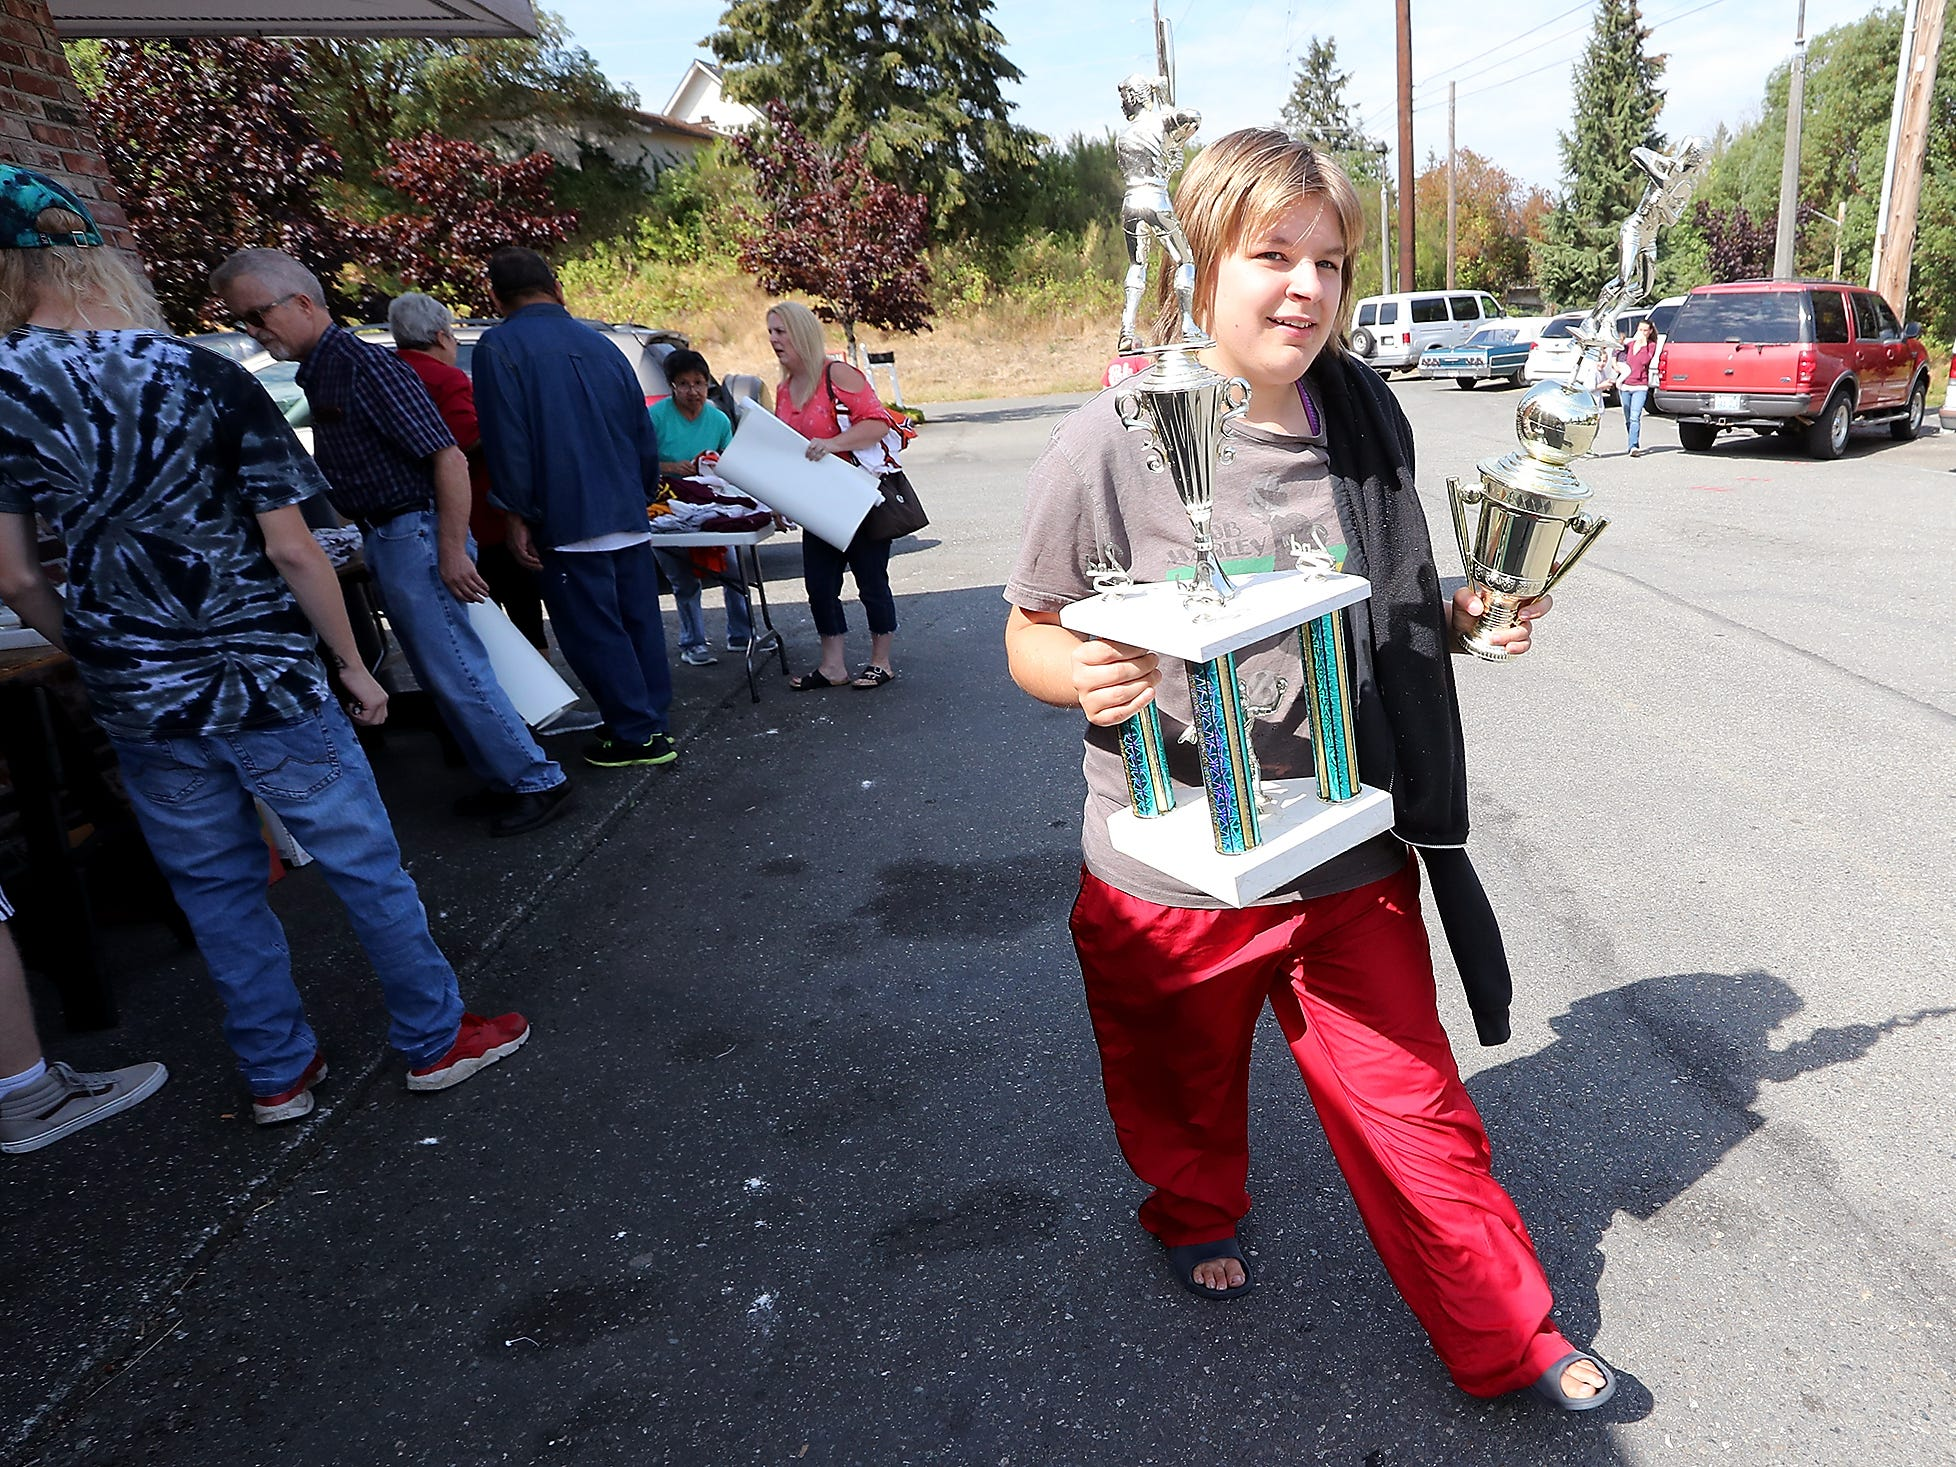 Skyann Gillett carries away two trophies during a sports memorabilia giveaway and restaurant equipment sale at the A&W in Port Orchard on Wednesday, August 29, 2018.